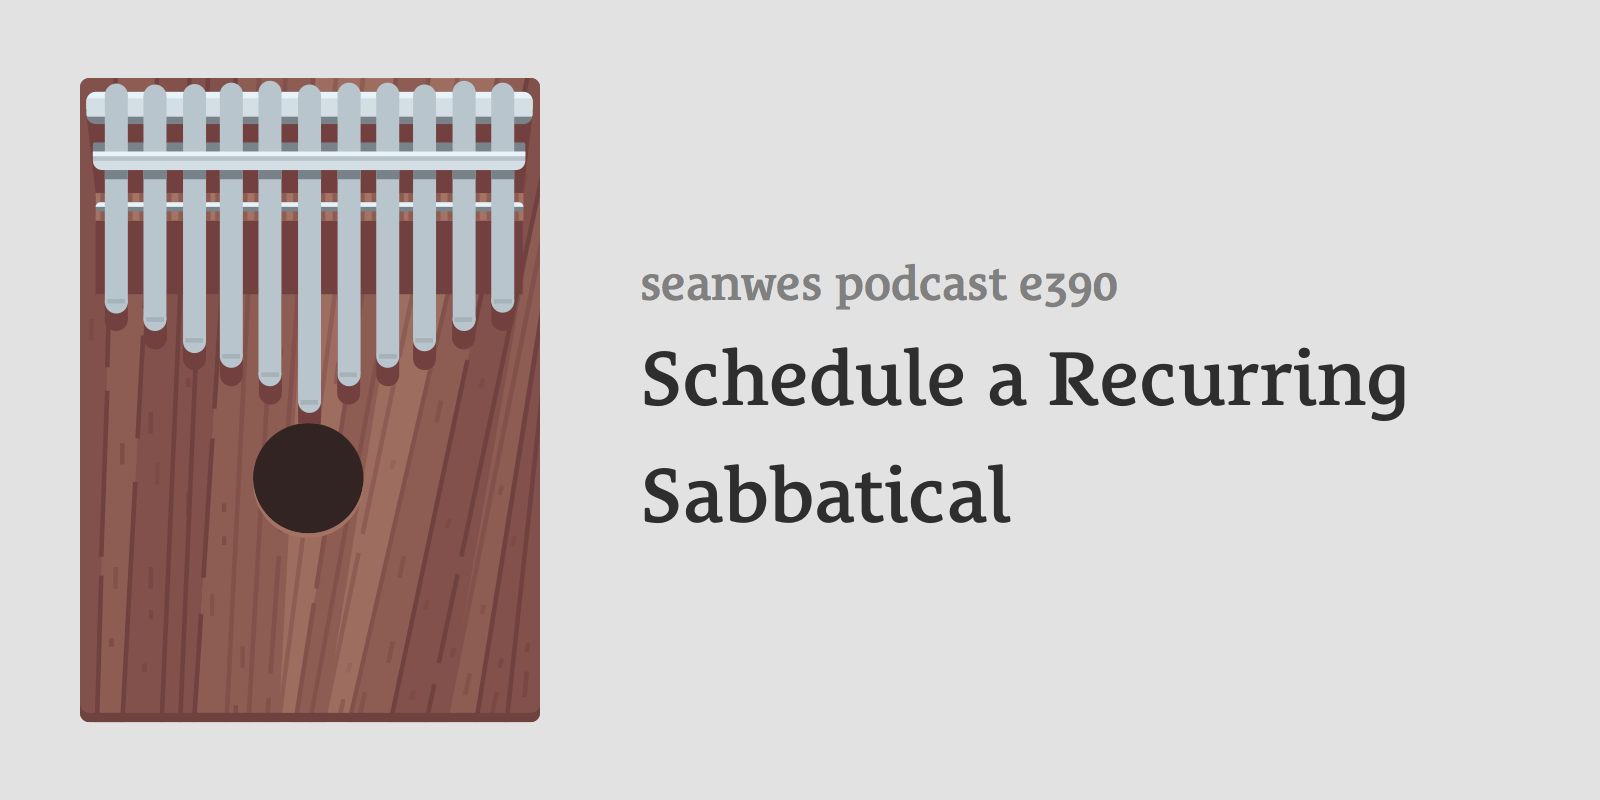 Schedule a Recurring Sabbatical